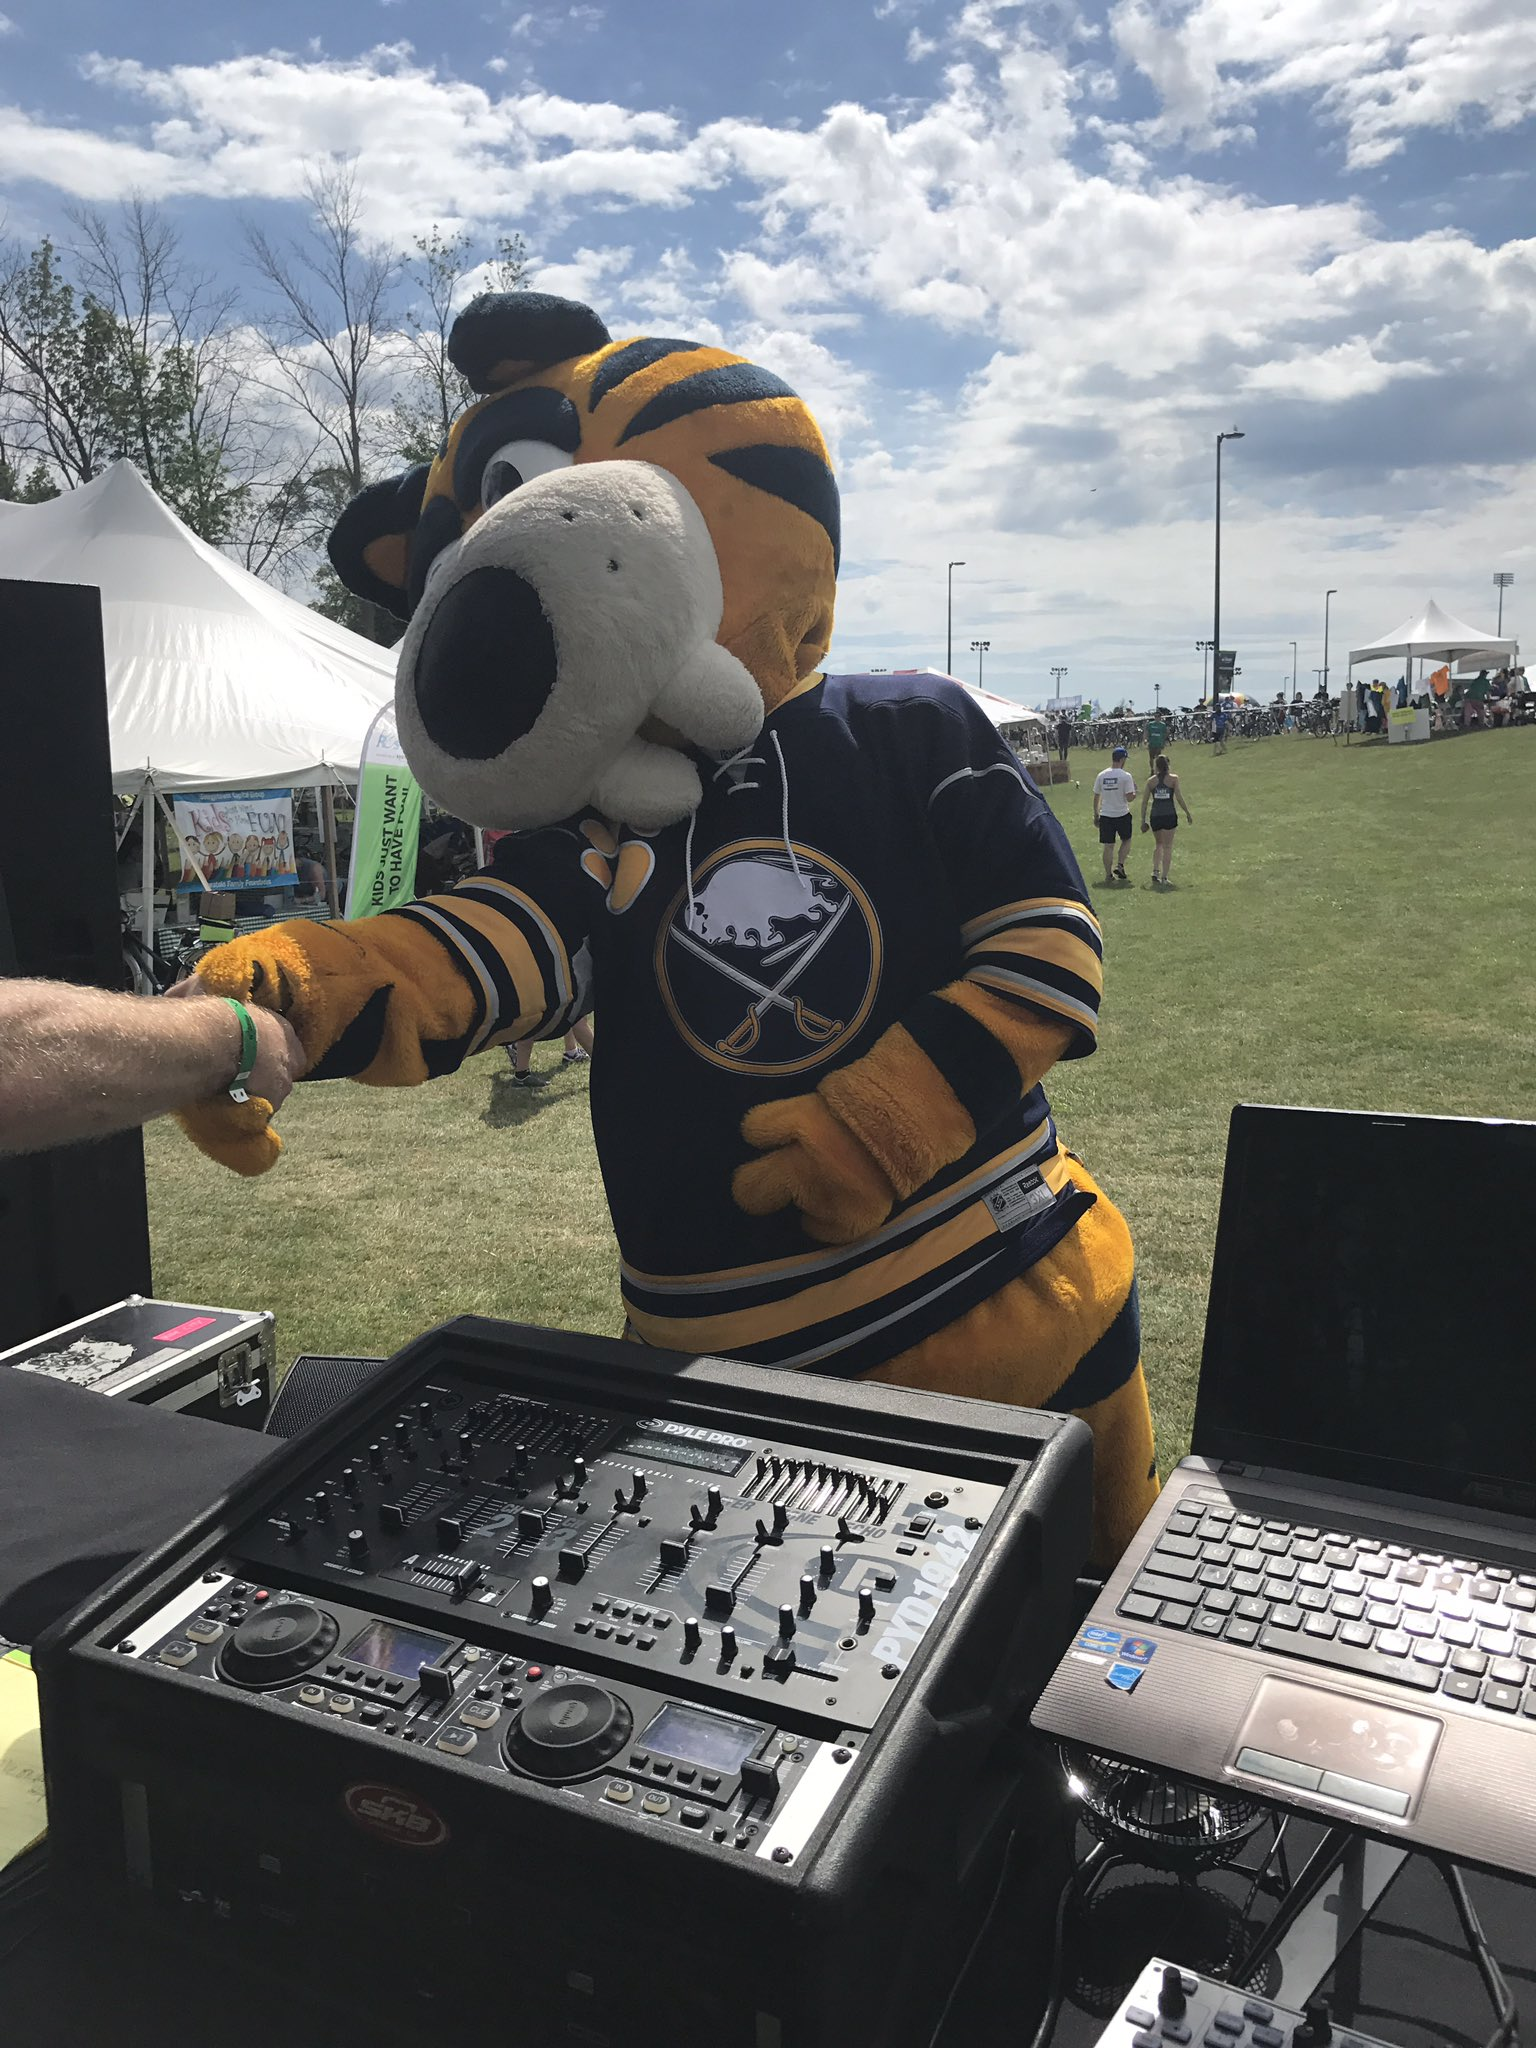 Sabretooth is rocking out at #rfr17 @BuffaloSabres https://t.co/hnJm4kEGf4